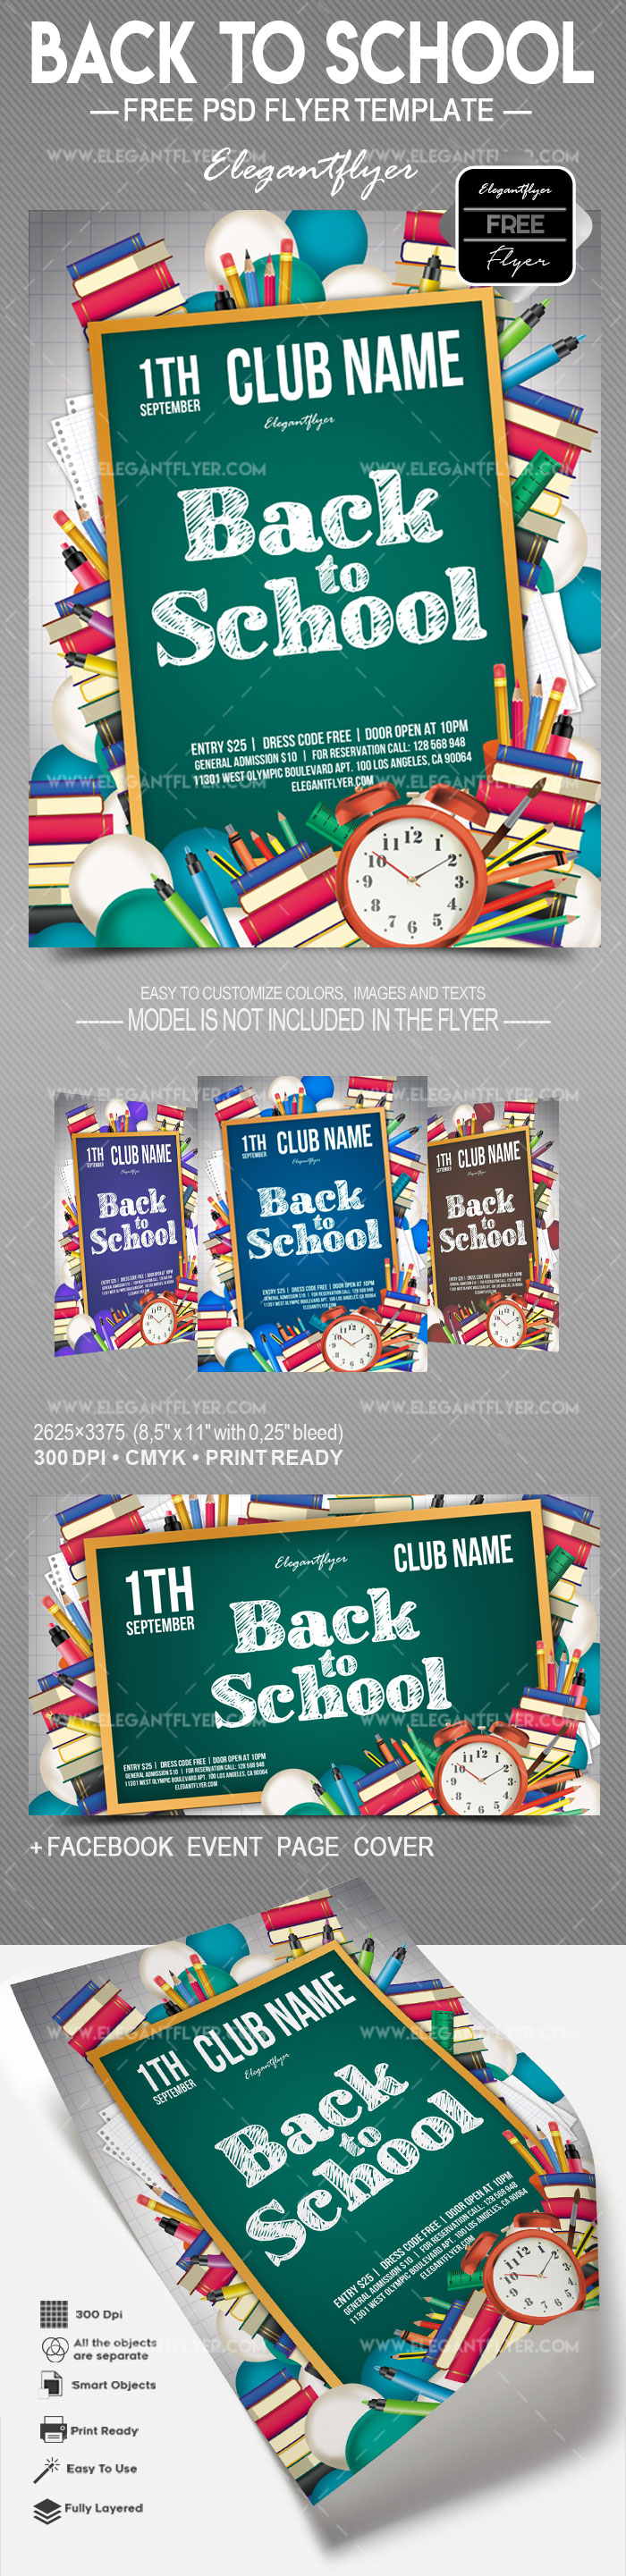 Back to School – Free Flyer PSD Template